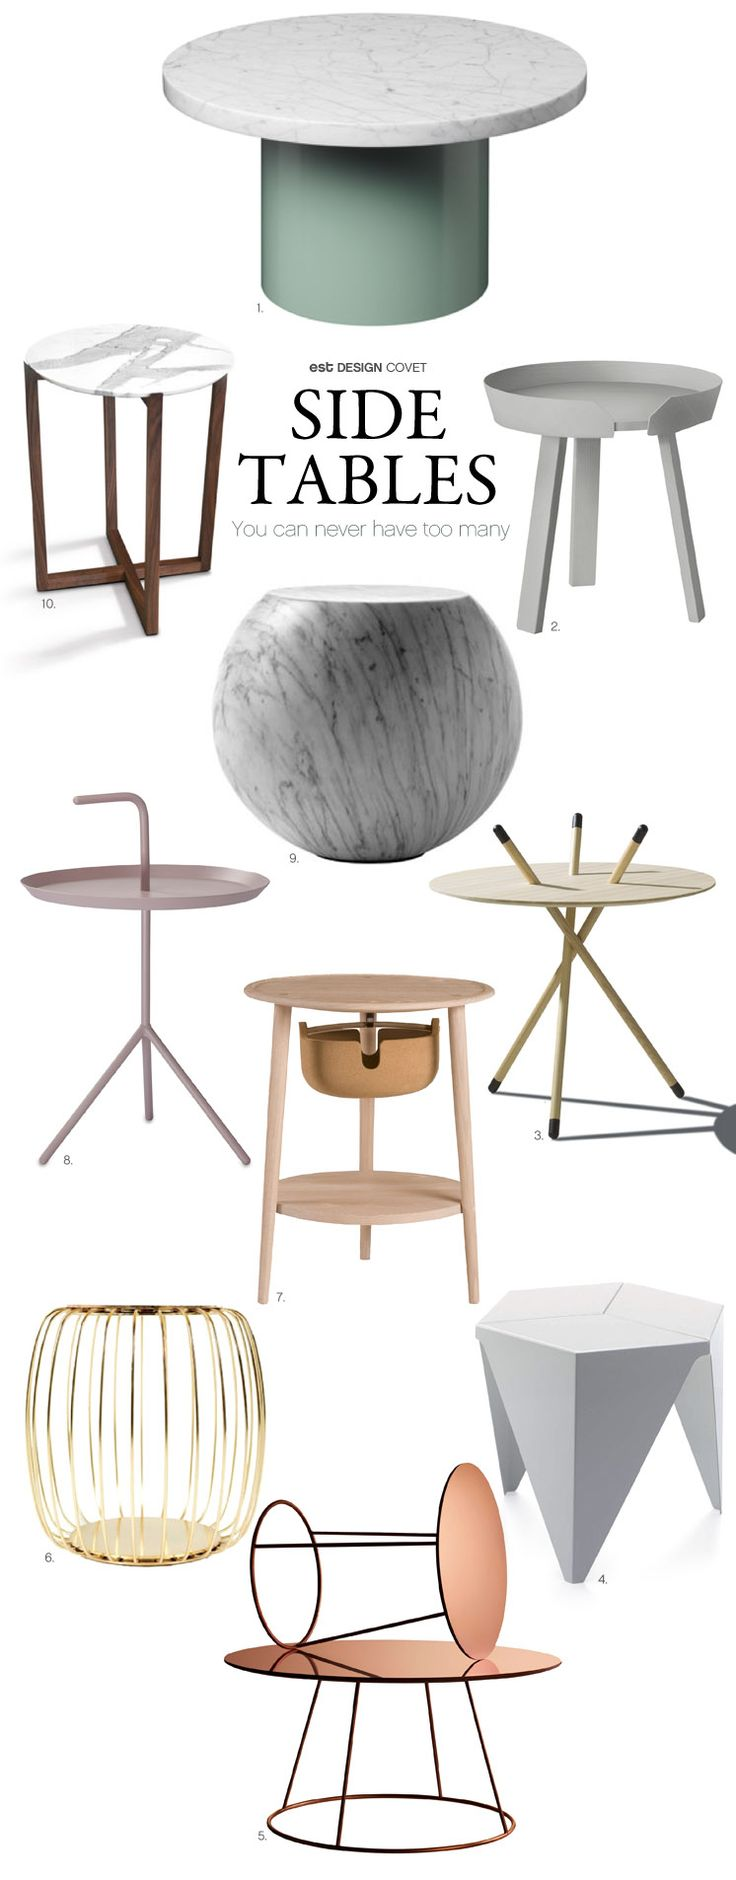 Design covet side tables although small these tables can pack a punch a side table should never be forgotten or left out of any interior and you can